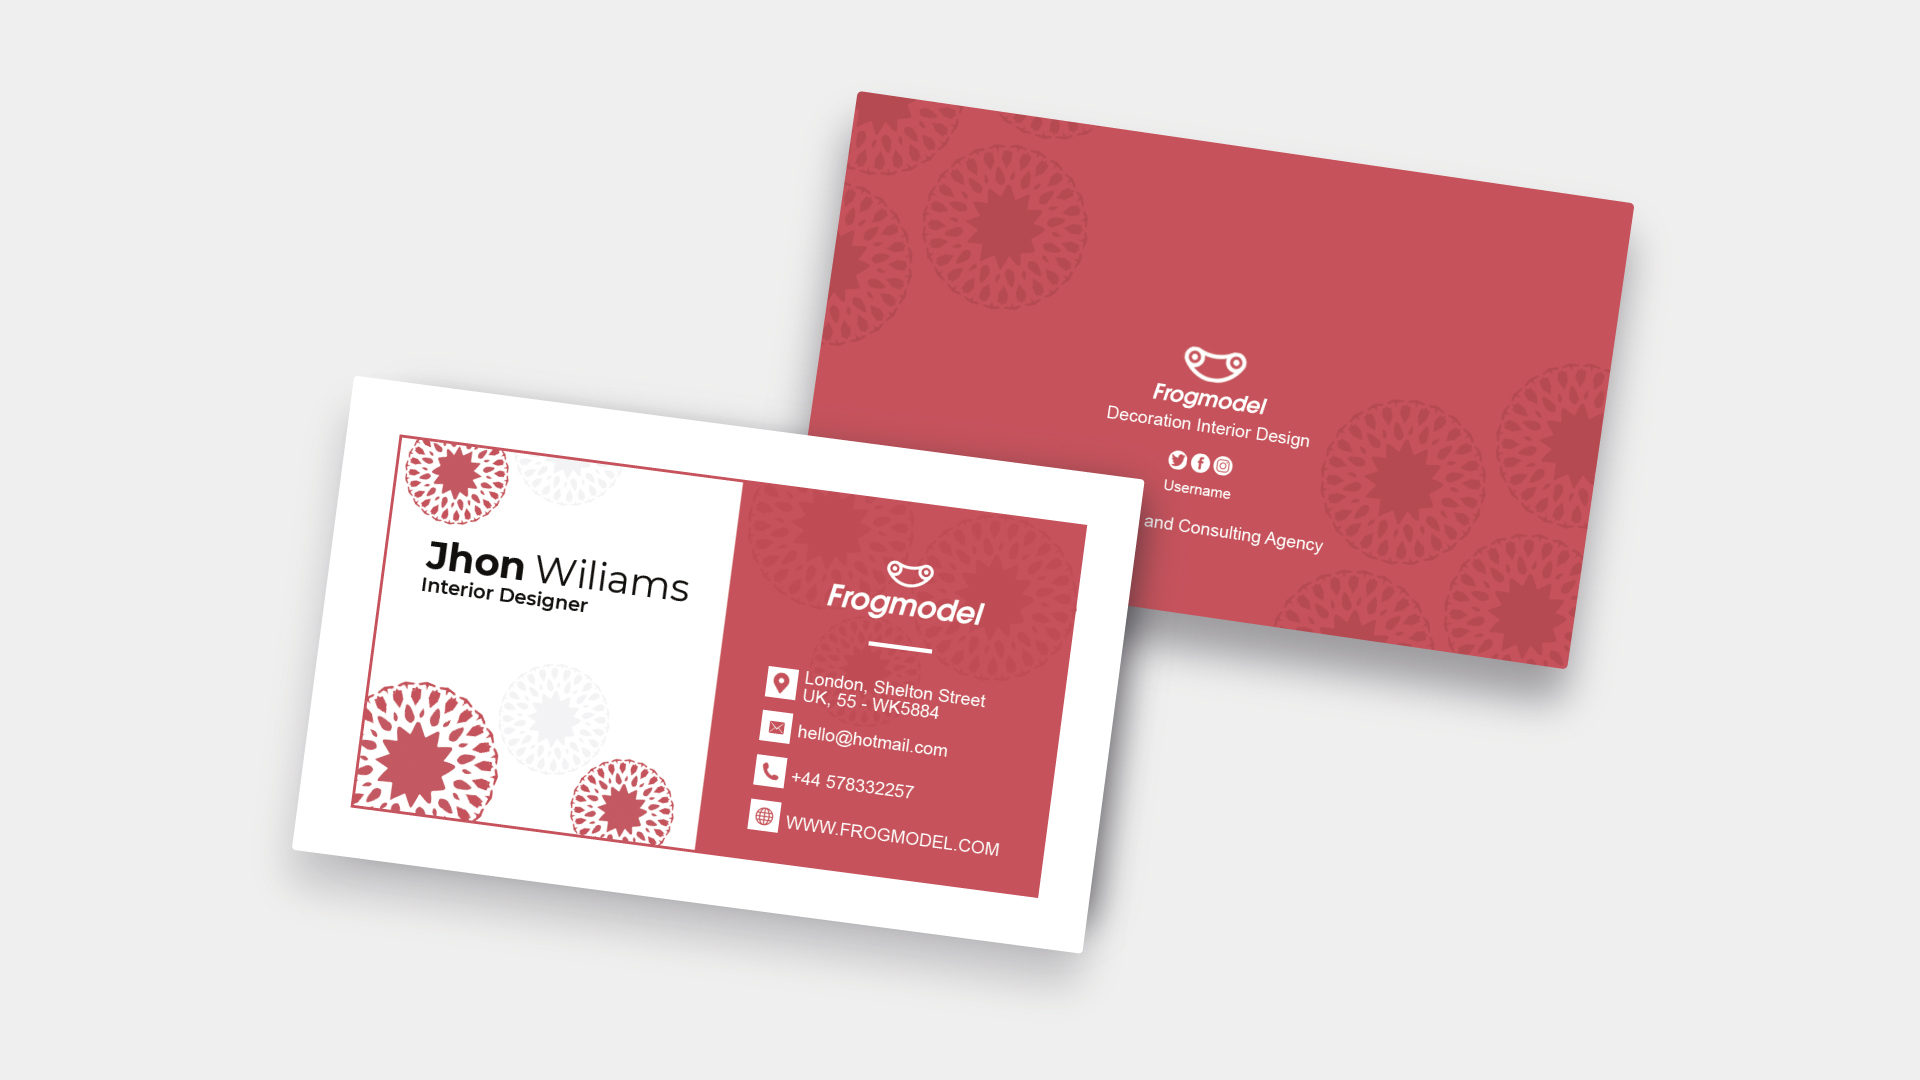 Red Business Card Templates & Design from FrogModel